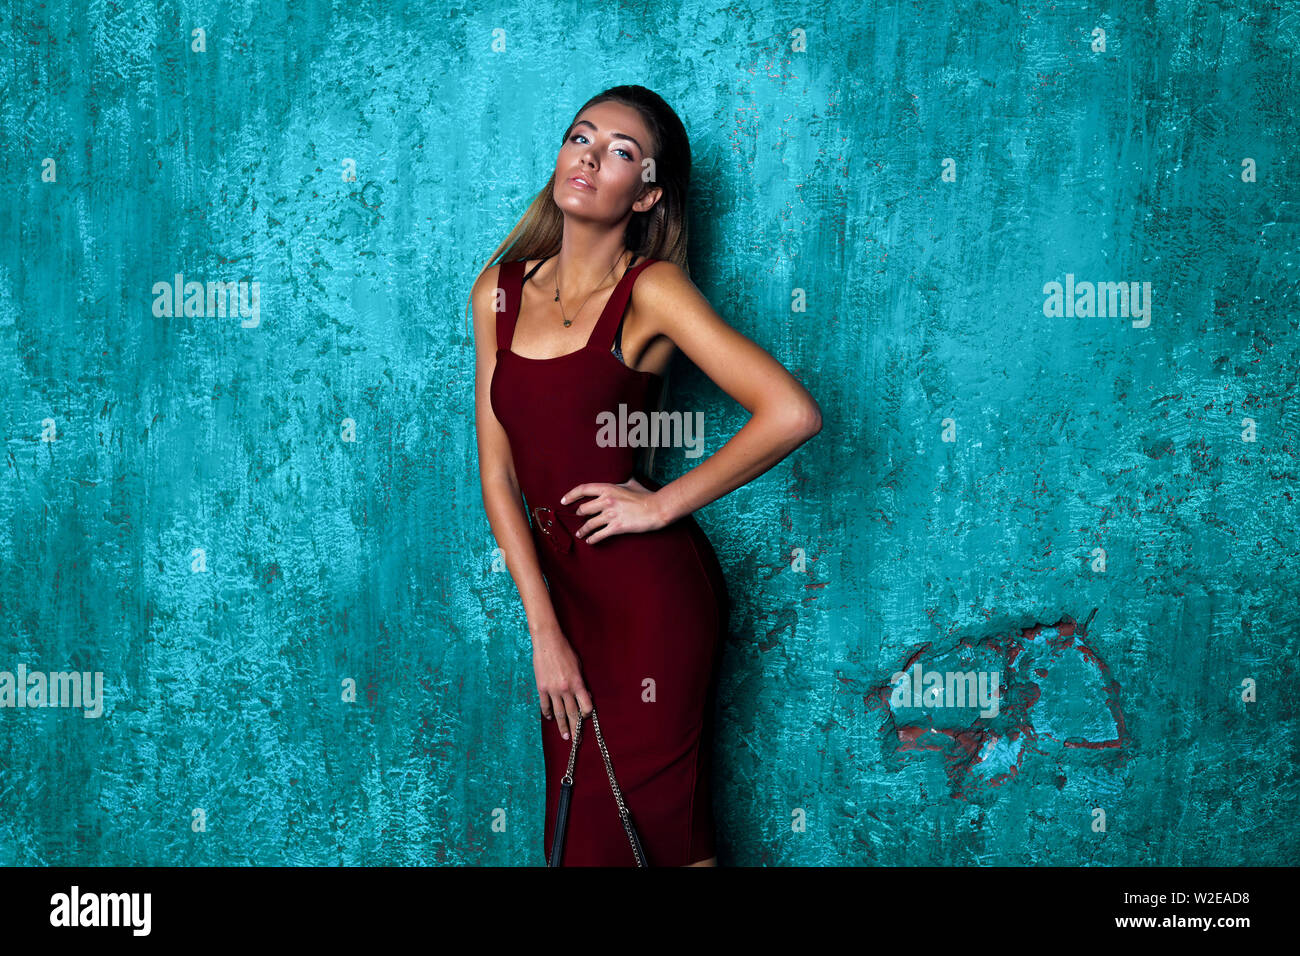 Tender woman in amazing stylish dress shooting in studio for the fashion magazine.Burgundy skinny dress with waist belt. Long blonde hairstyle, makeup Stock Photo